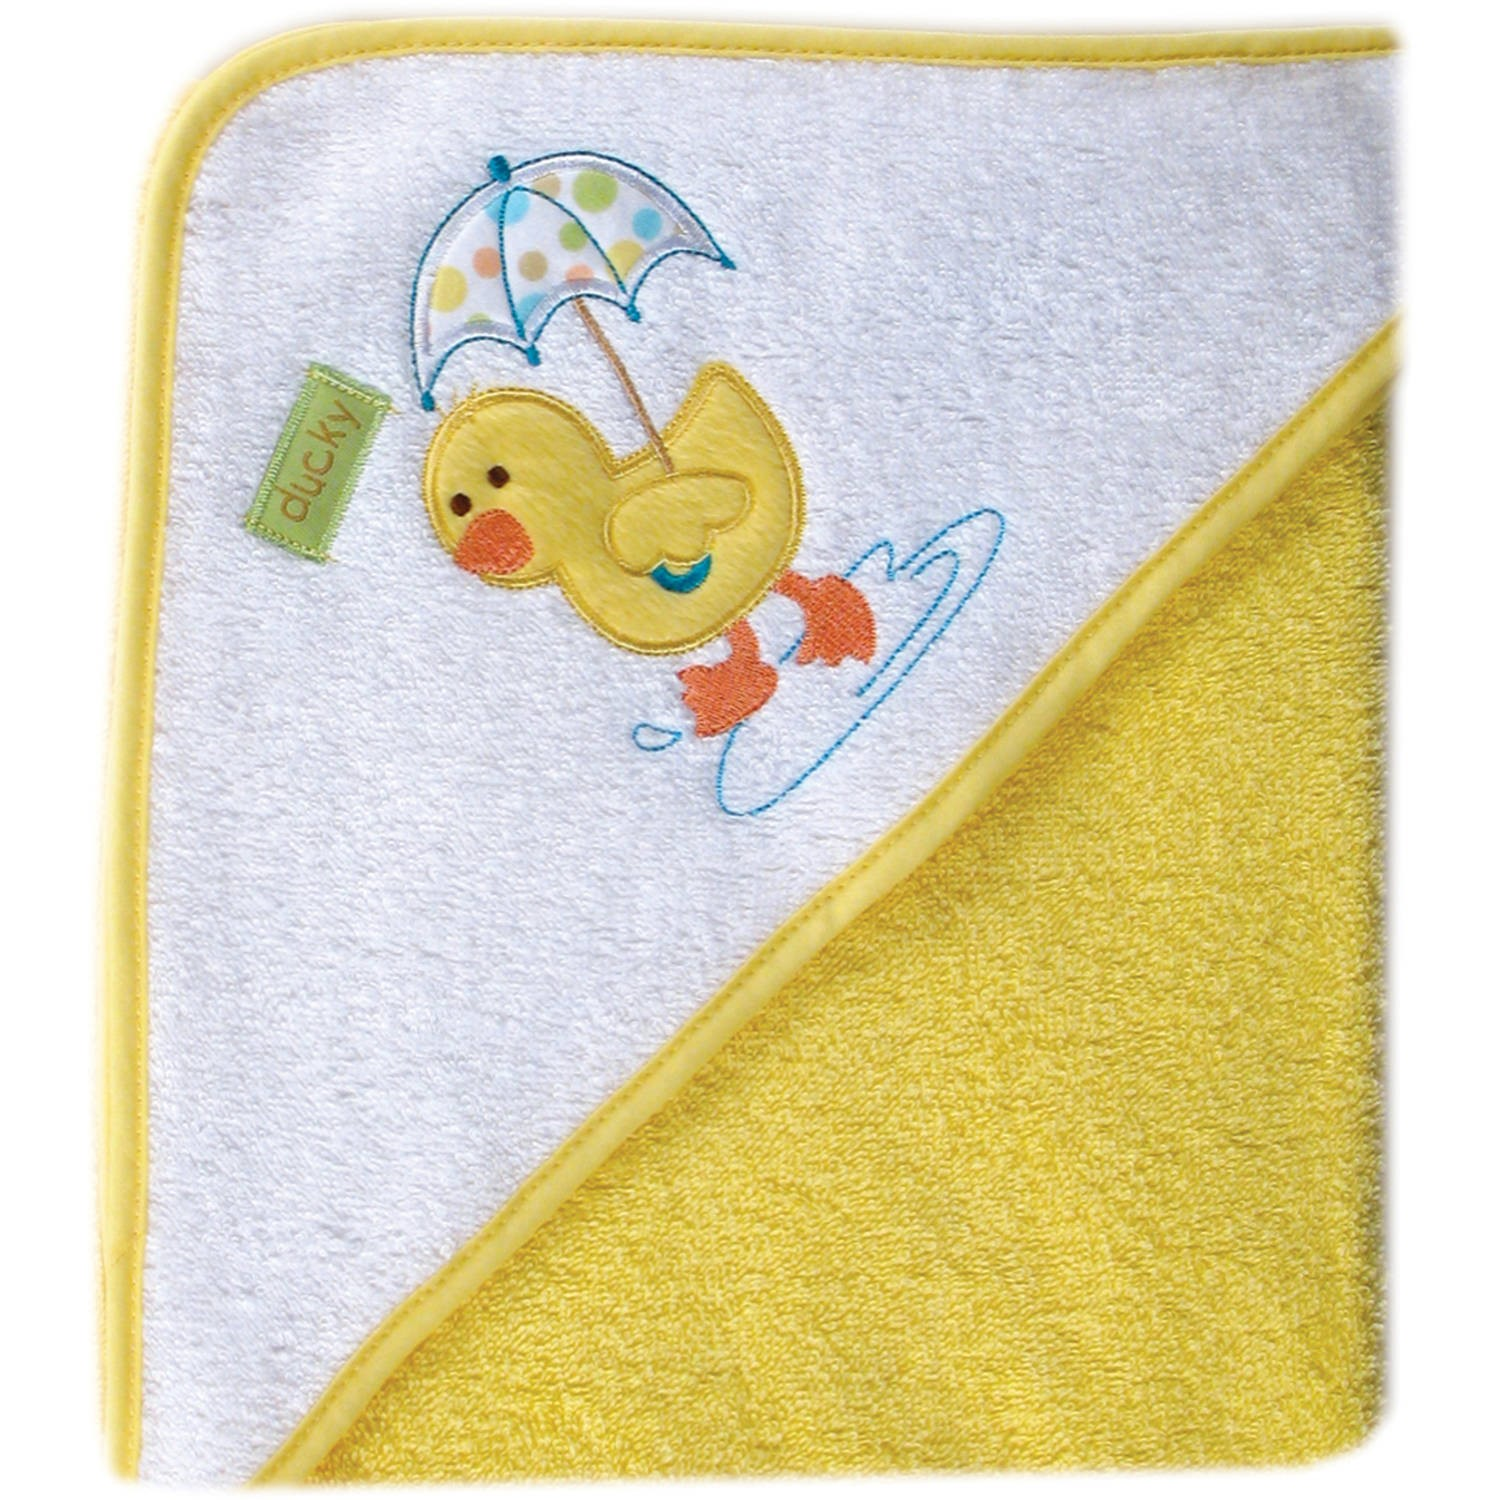 Duck Panda Cat Frog hand towel soft cotton Hair Hand drying towels Baby Durable